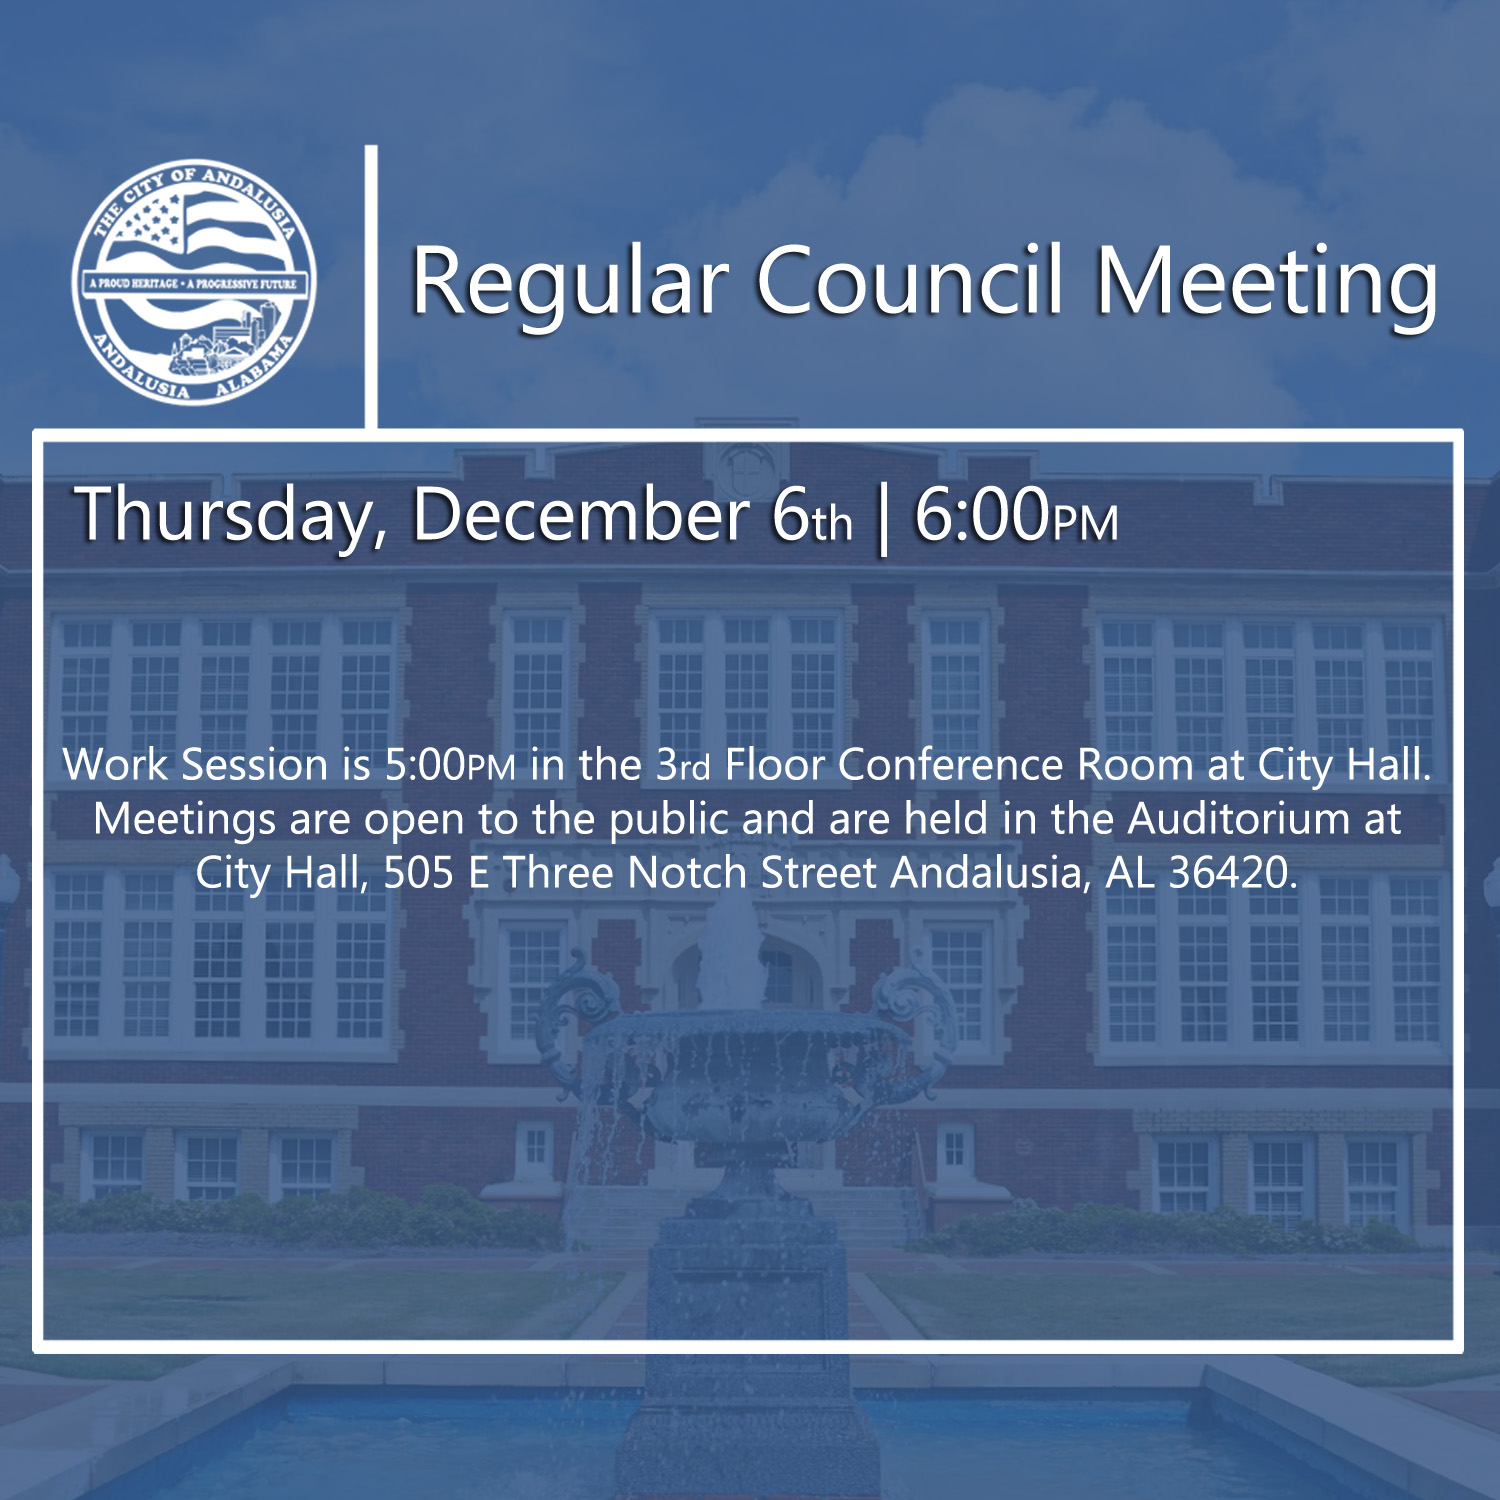 Website Regular Council Meeting December 6